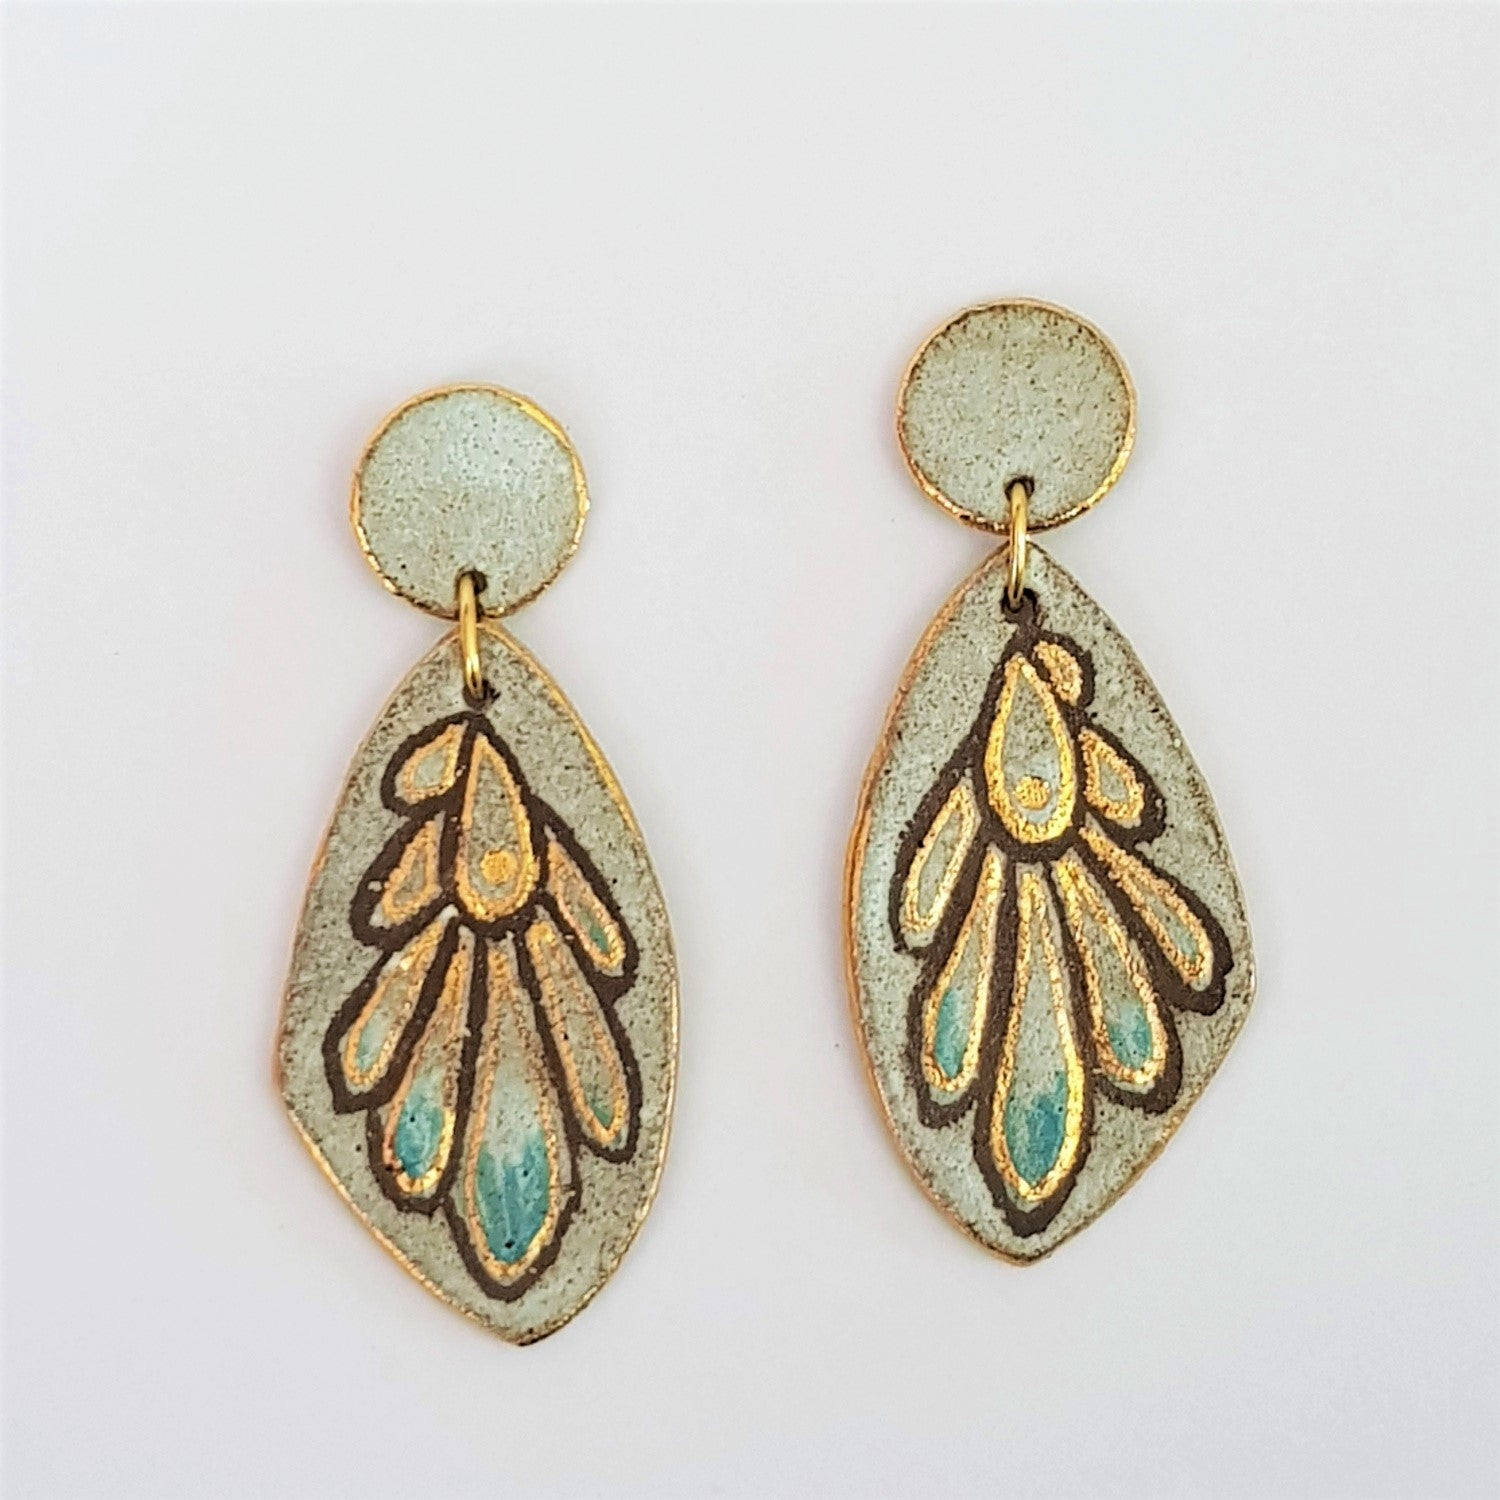 Earthy wing earrings in dark clay and matte glaze with gold